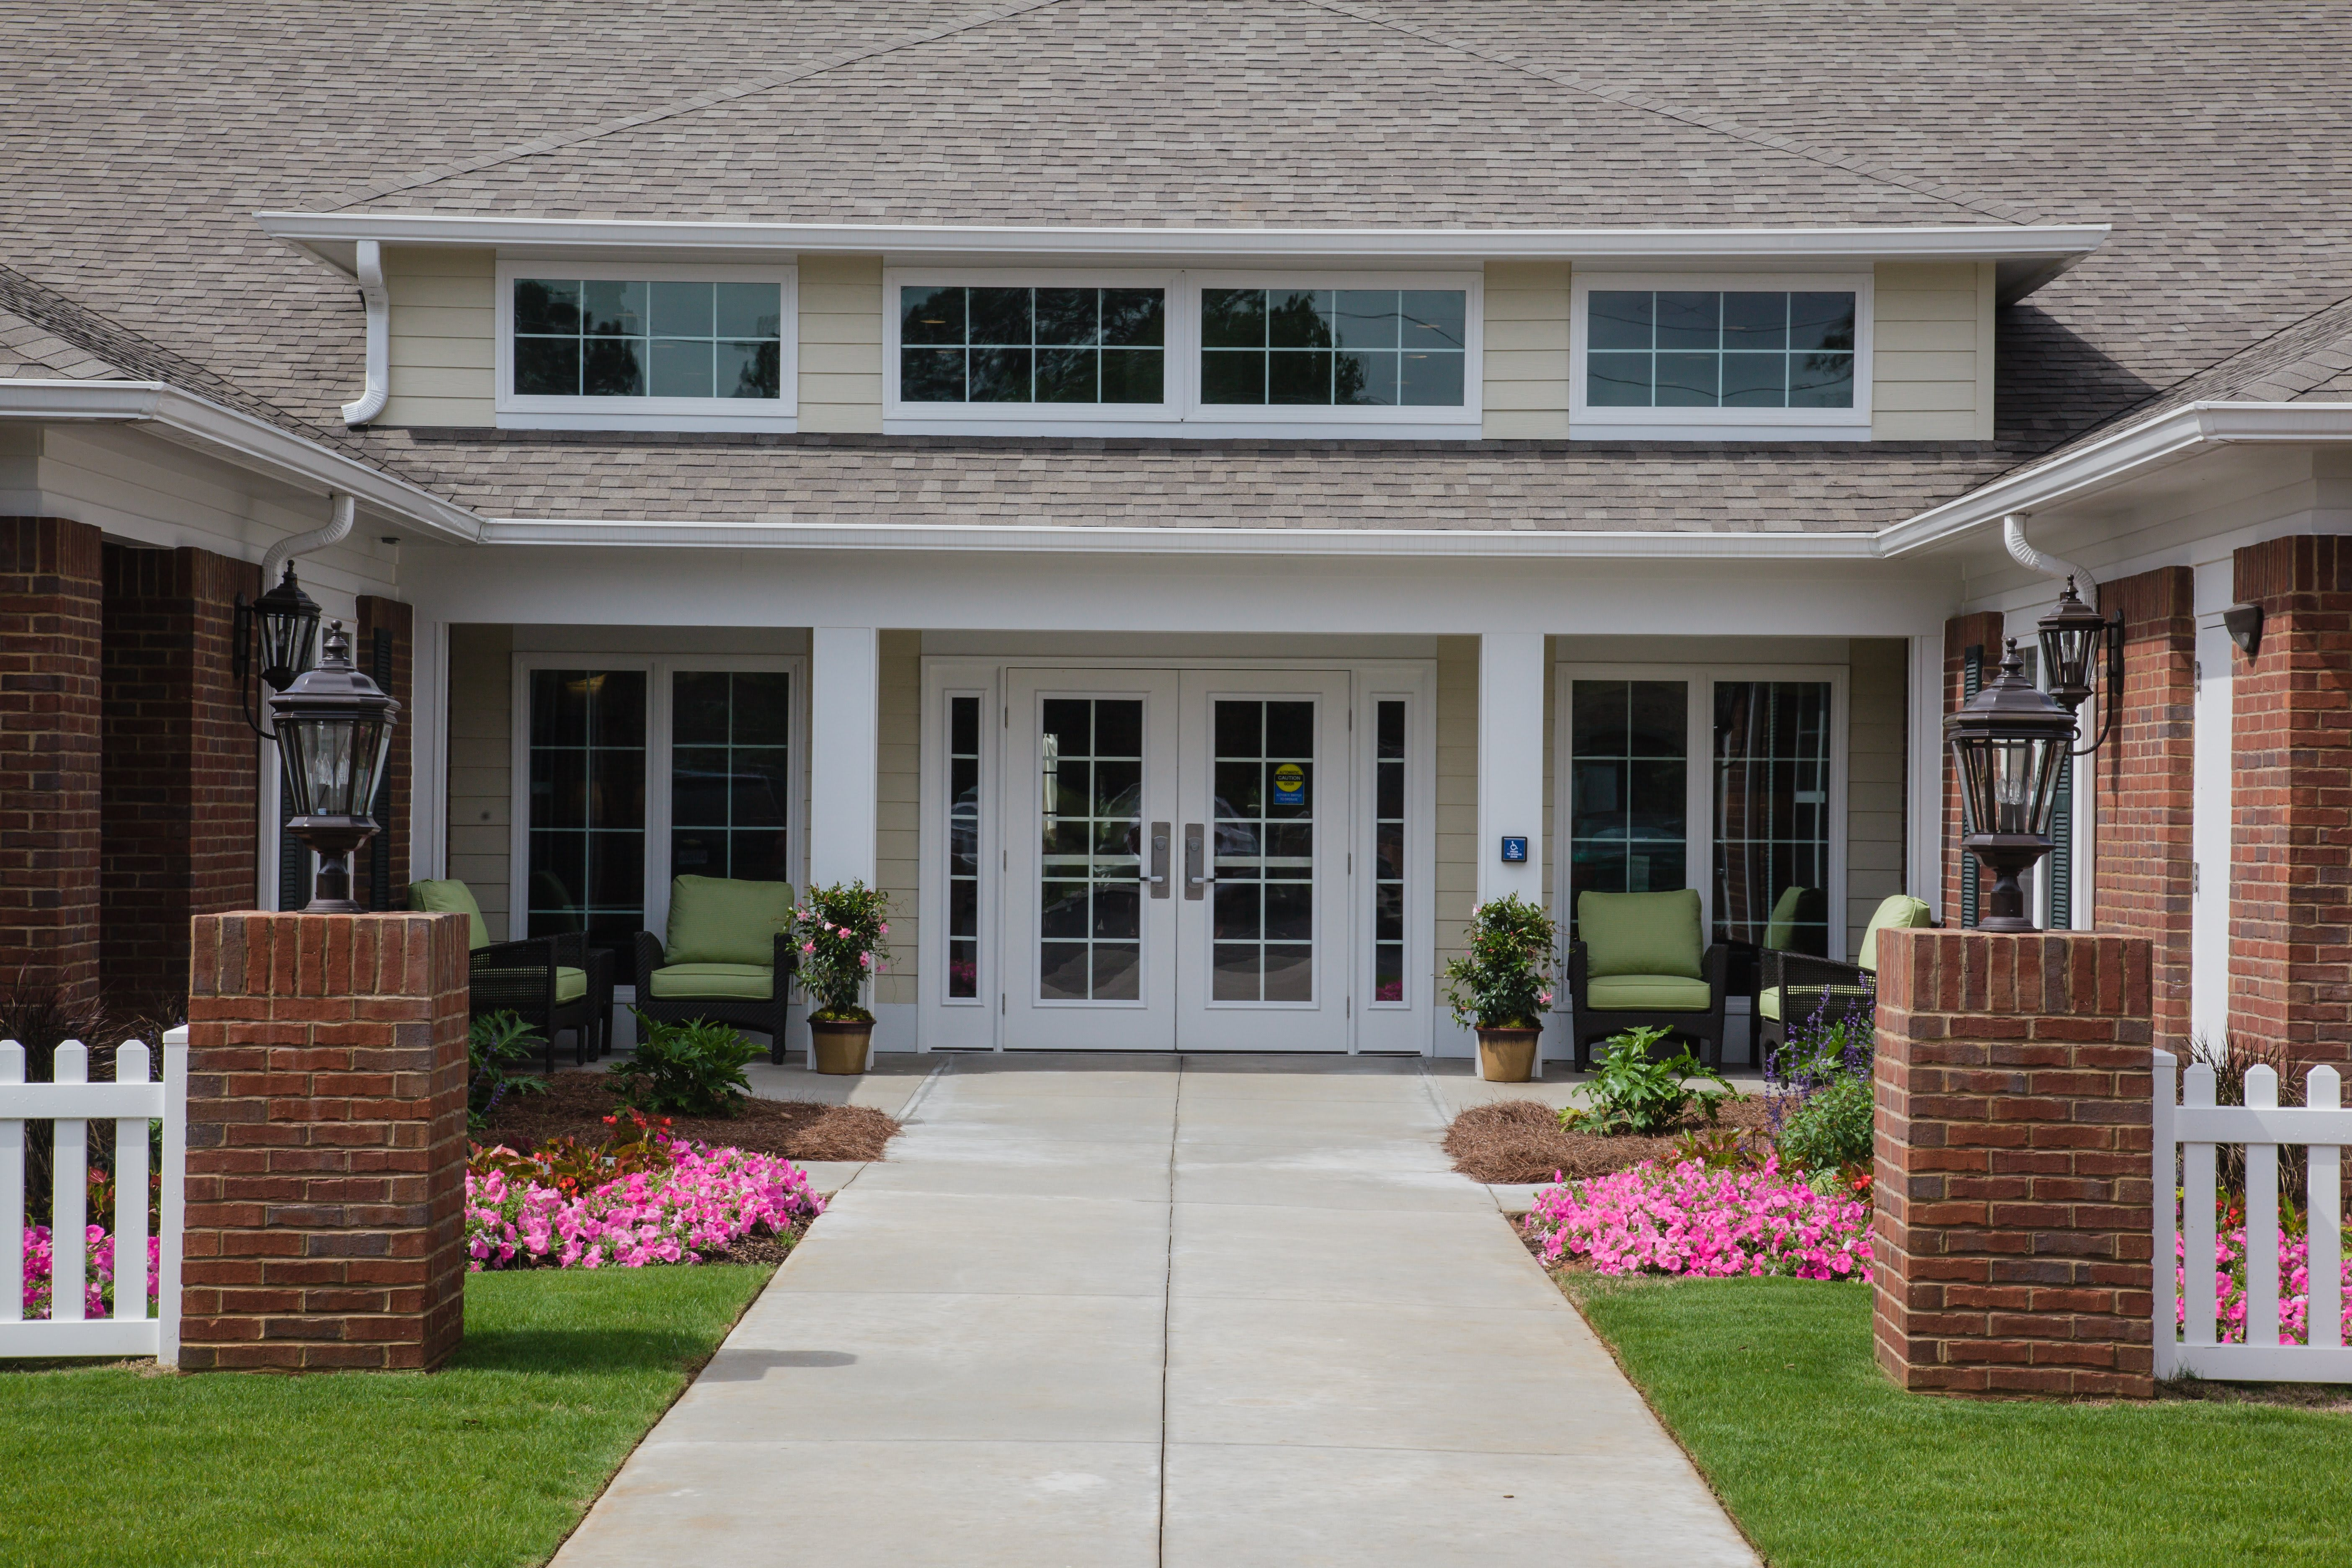 Photo 1 of Country Place Senior Living of Greenville